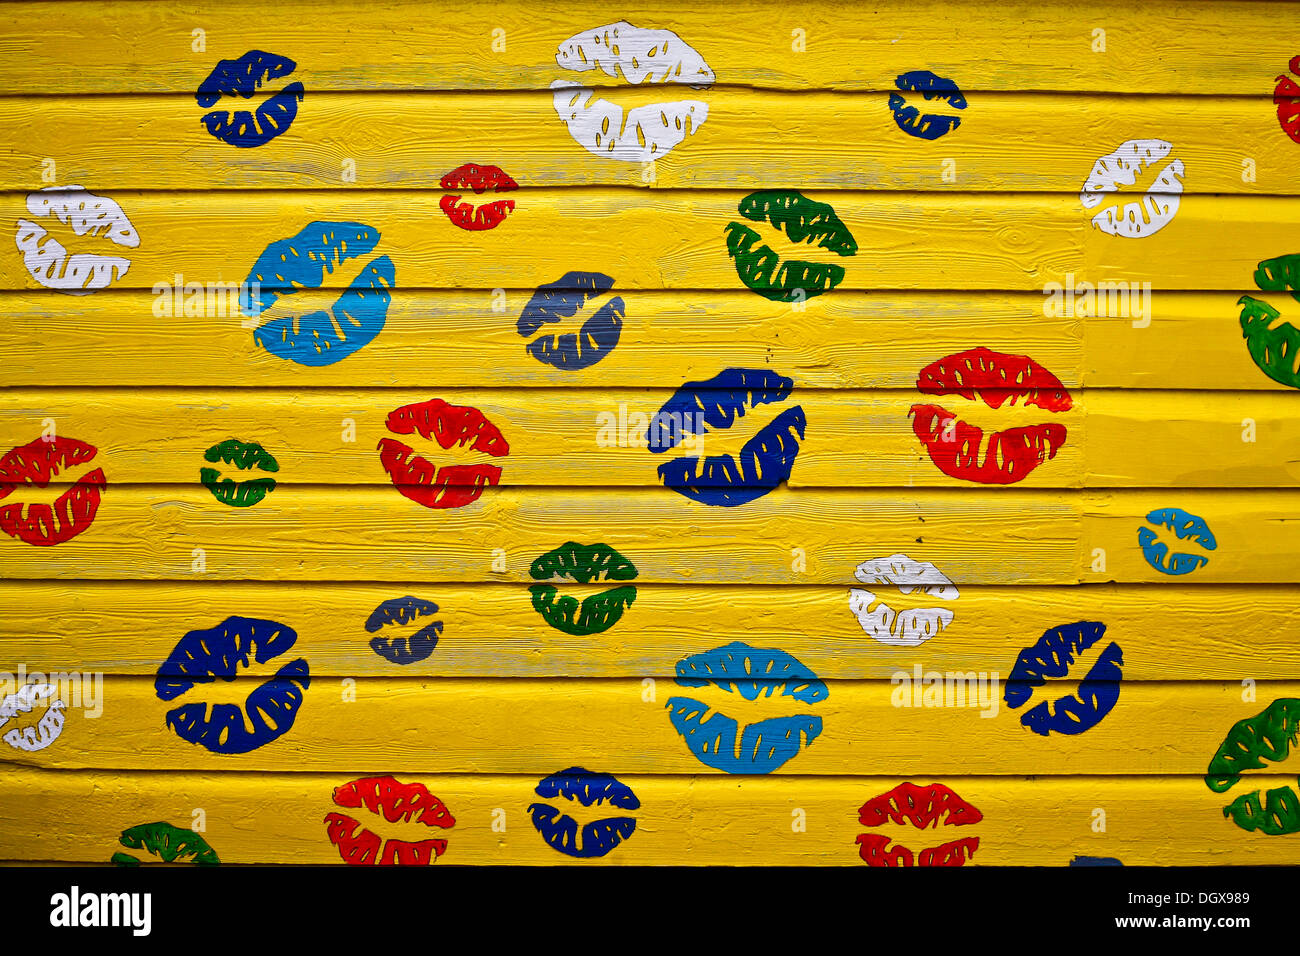 Kissing lips painted on a house wall, Aberdeen, Scotland, United Kingdom - Stock Image